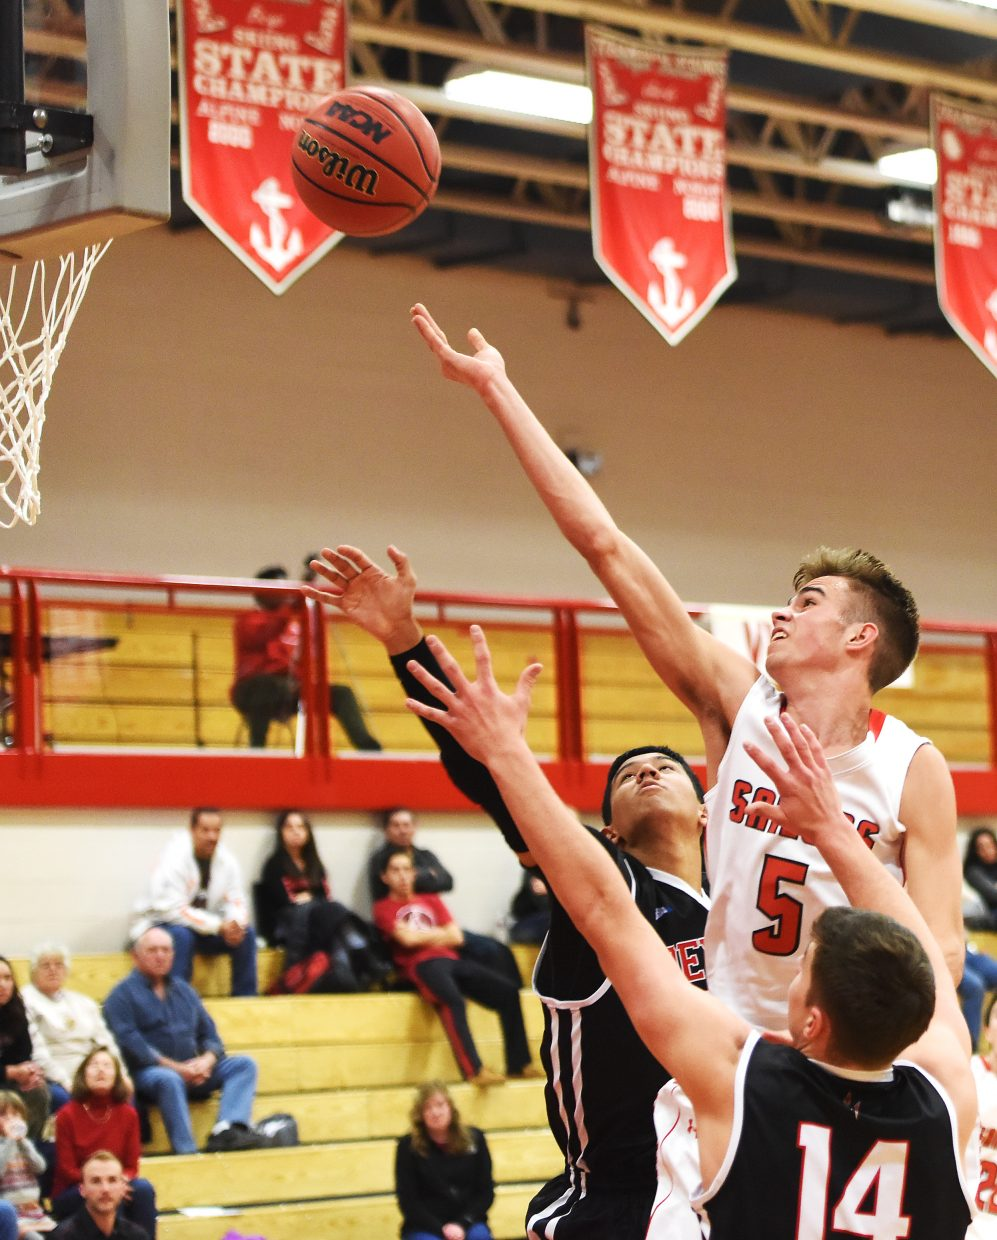 Steamboat senior Jon Rinck tries to lay in a shot Saturday against Eagle Valley. Rinck finished the game with eight points, but his team lost in overtime, 45-39.